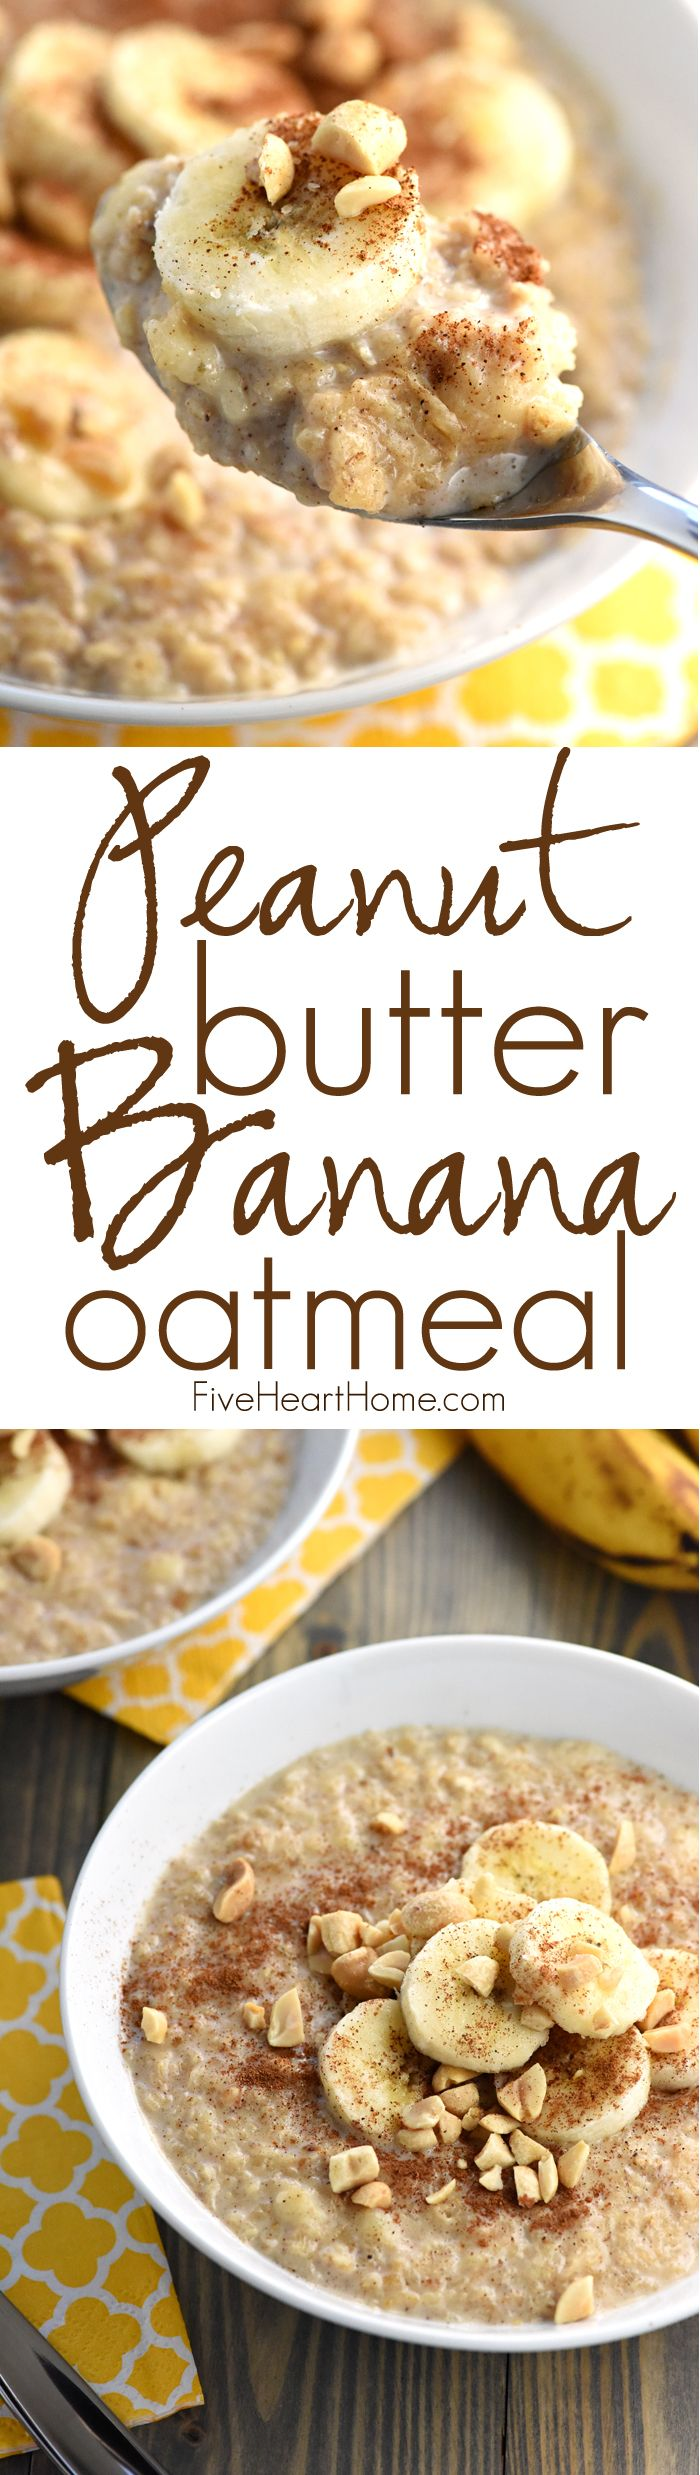 Peanut Butter Banana Oatmeal 1 3/4 cups milk 1 cup quick oats 1 large ripe banana, mashed 2 tablespoons peanut butter 1/2 teaspoon ground cinnamon 1/4 teaspoon pure vanilla extract Pinch of salt 1 to 3 teaspoons honey, optional Sliced bananas, chopped peanuts, and cinnamon, for serving FiveHeartHome.com